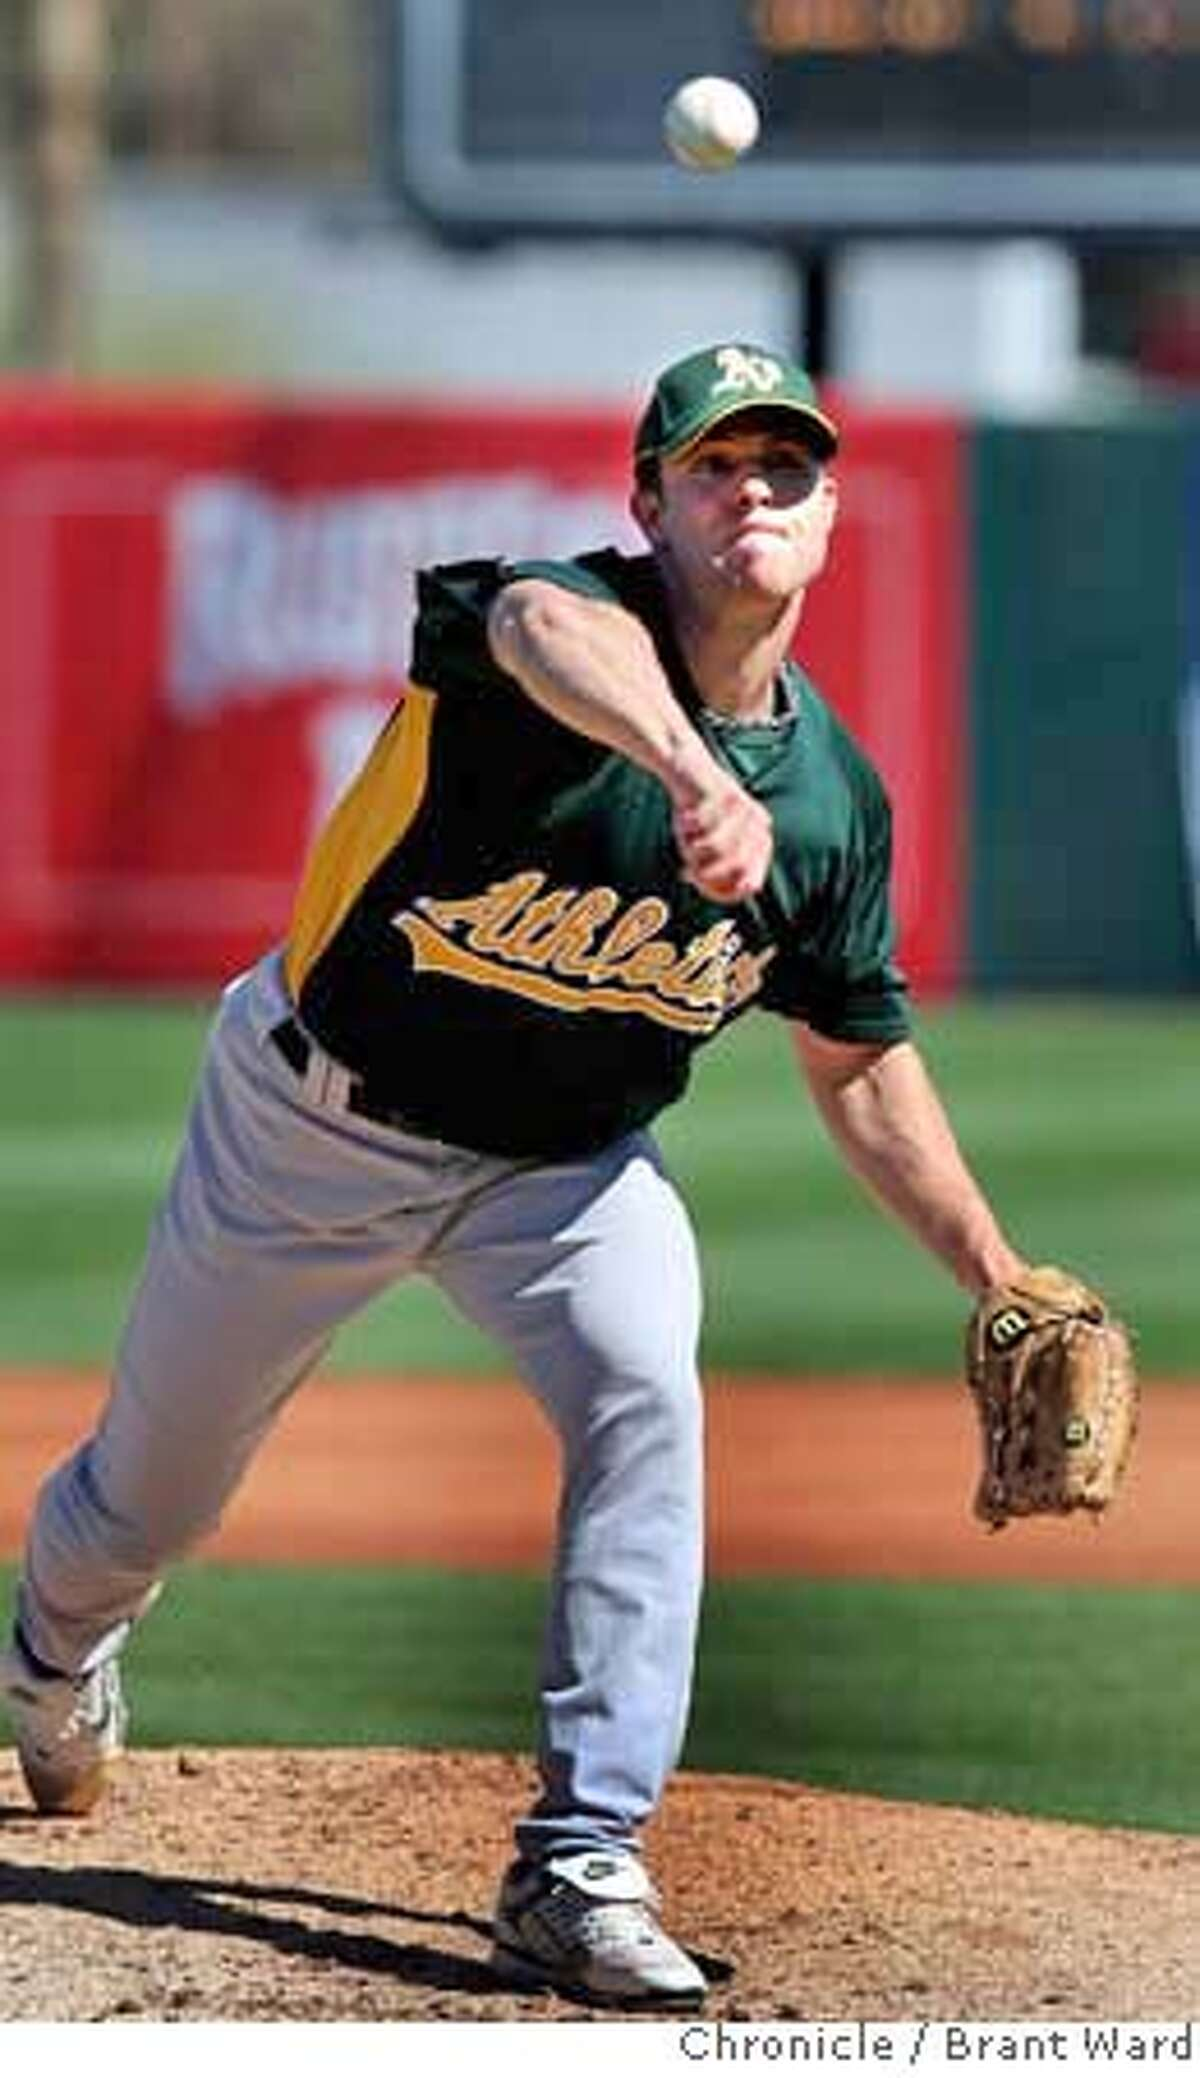 Rich Harden pitched three strong innings in his debut for the 2008 season. On March 4, 2008 the Oakland Athletics played the Los Angeles Angels at Tempe Diablo Stadium in a spring training game. Photo by Brant Ward / San Francisco Chronicle